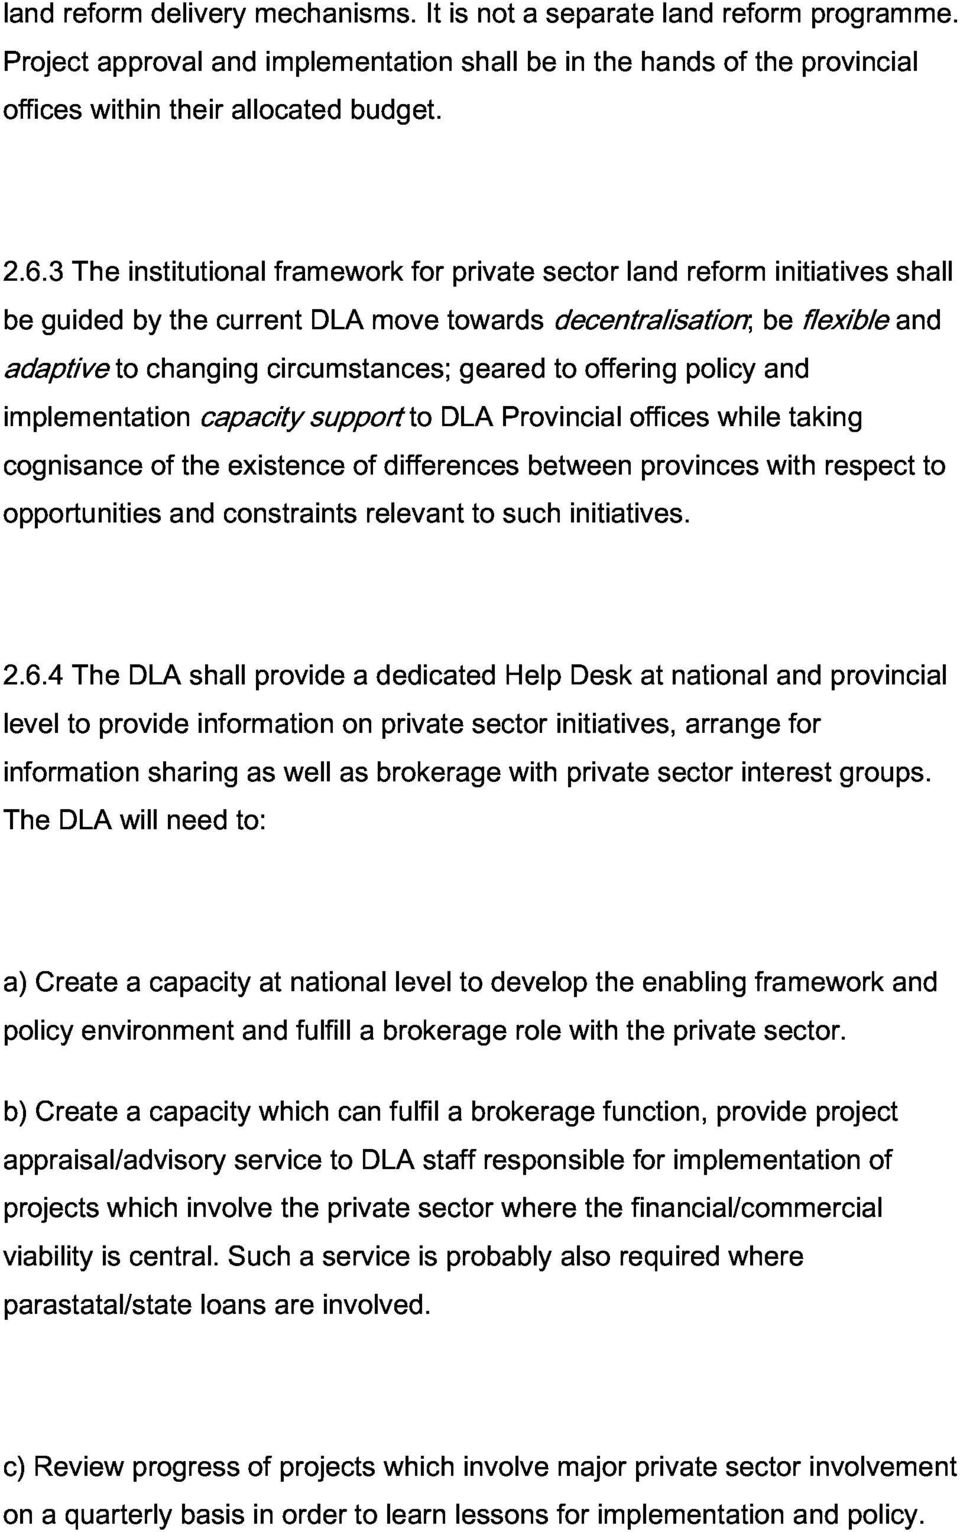 initiatives flexible and shall implementation cognisance opportunities of and the capacity constraints existence support of relevant differences to DLA to Provincial such between initiatives.